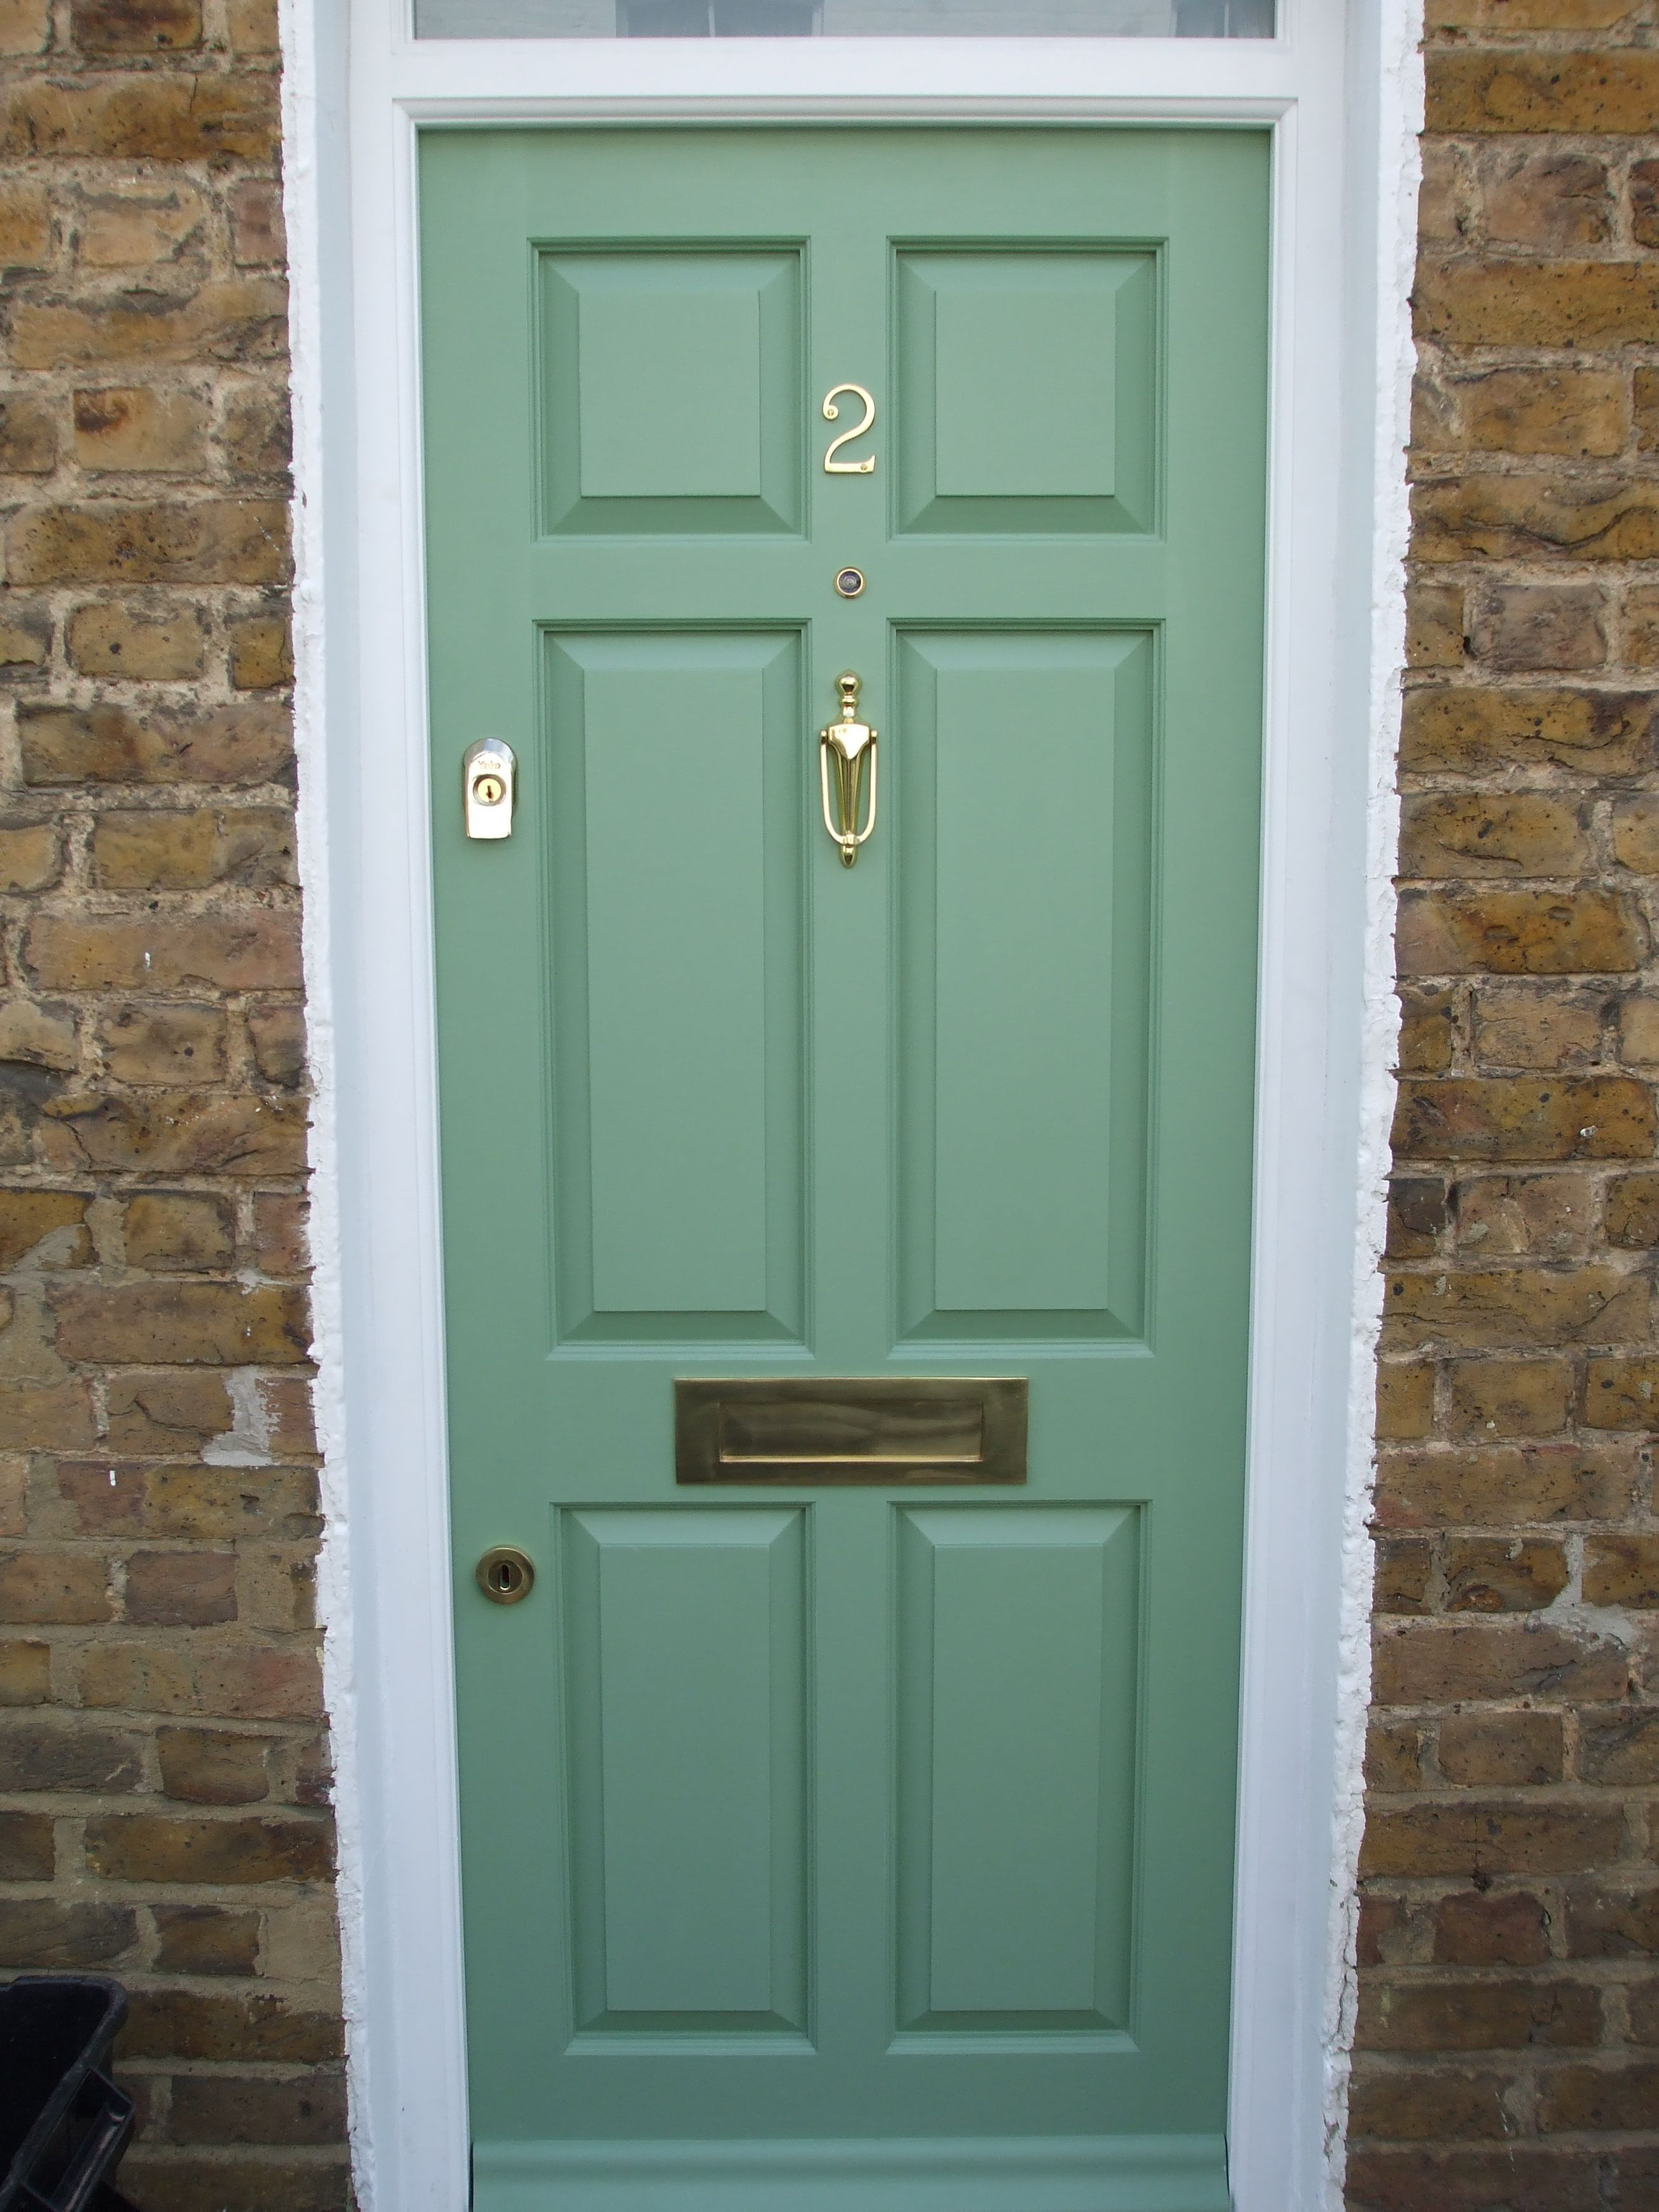 Gorgeous Colour On This 6 Panel Door The Client Was Very Pleased With How It Turned Out Wooden Sash Windows Window Renovation Casement Windows